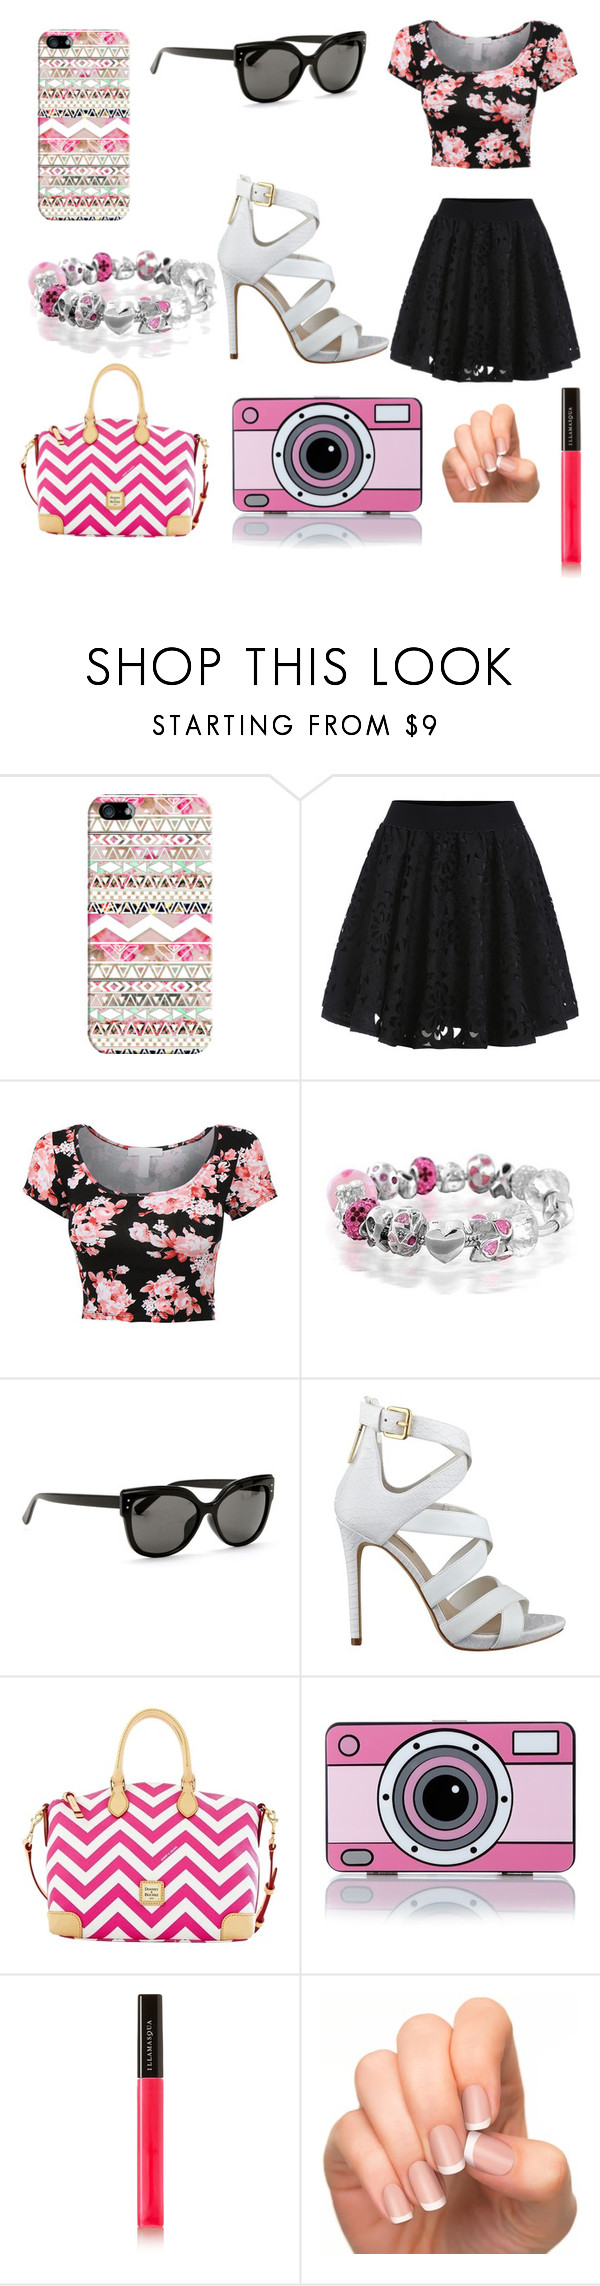 """""""pink and black style"""" by annabelle-loves-summer ❤ liked on Polyvore featuring Casetify, Bling Jewelry, GUESS, Dooney & Bourke, Yazbukey and Illamasqua"""